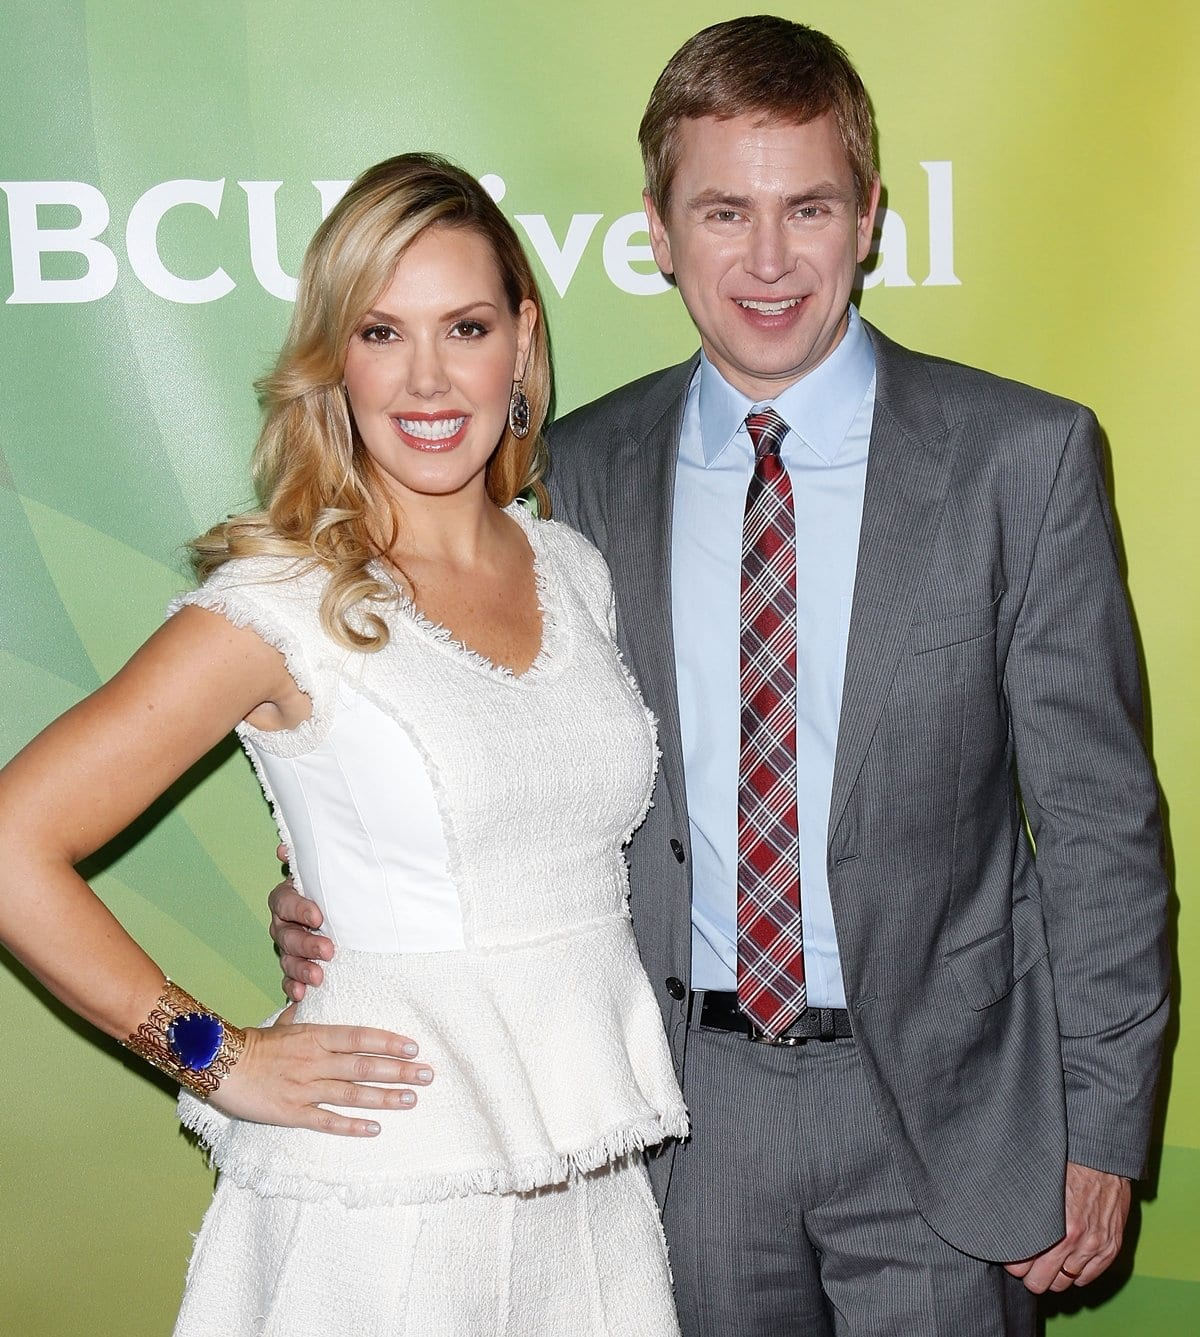 Canadian-American television host Pat Kiernan and jewelry designer Kendra Scott hosted the American competition/reality television series Crowd Rules